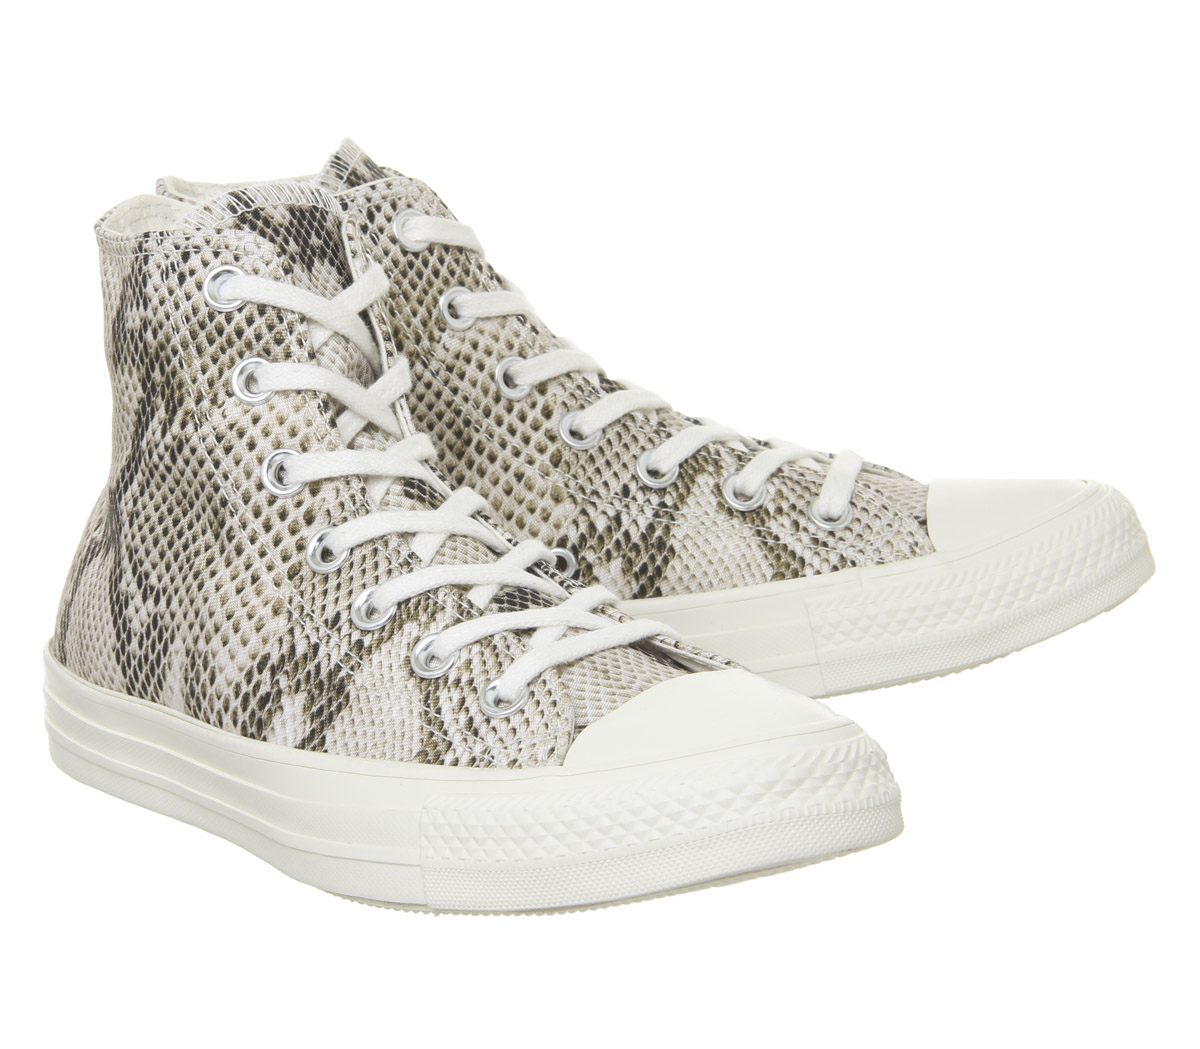 Womens-Converse-Converse-All-Star-Hi-Trainers-Egret-Black-Snake-Trainers-Shoes thumbnail 8